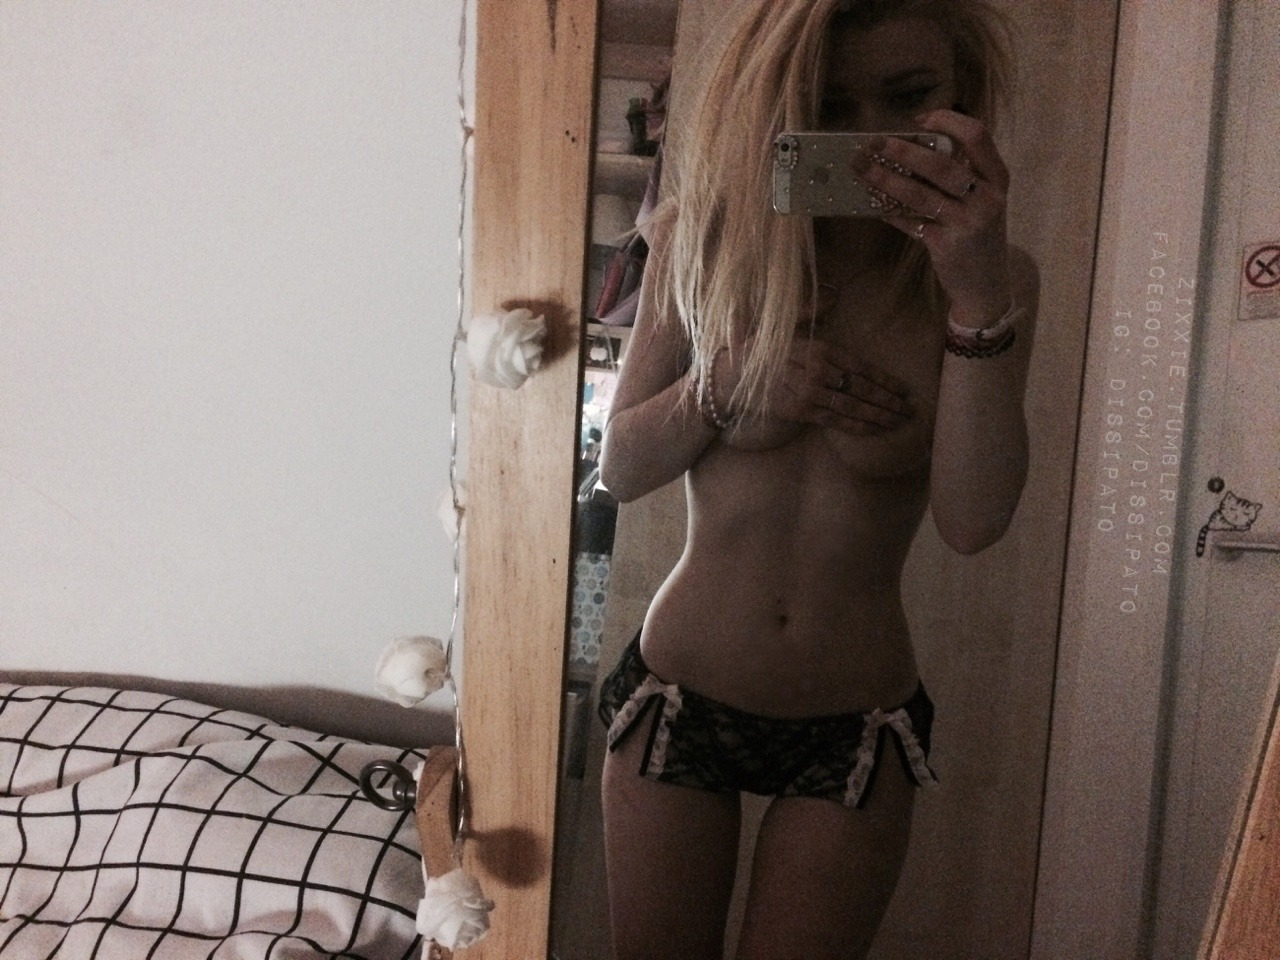 Real Girl Love Nude Selfie With Iphone Part 2 20 - Real Girl Love Nude Selfie With Iphone Part 2